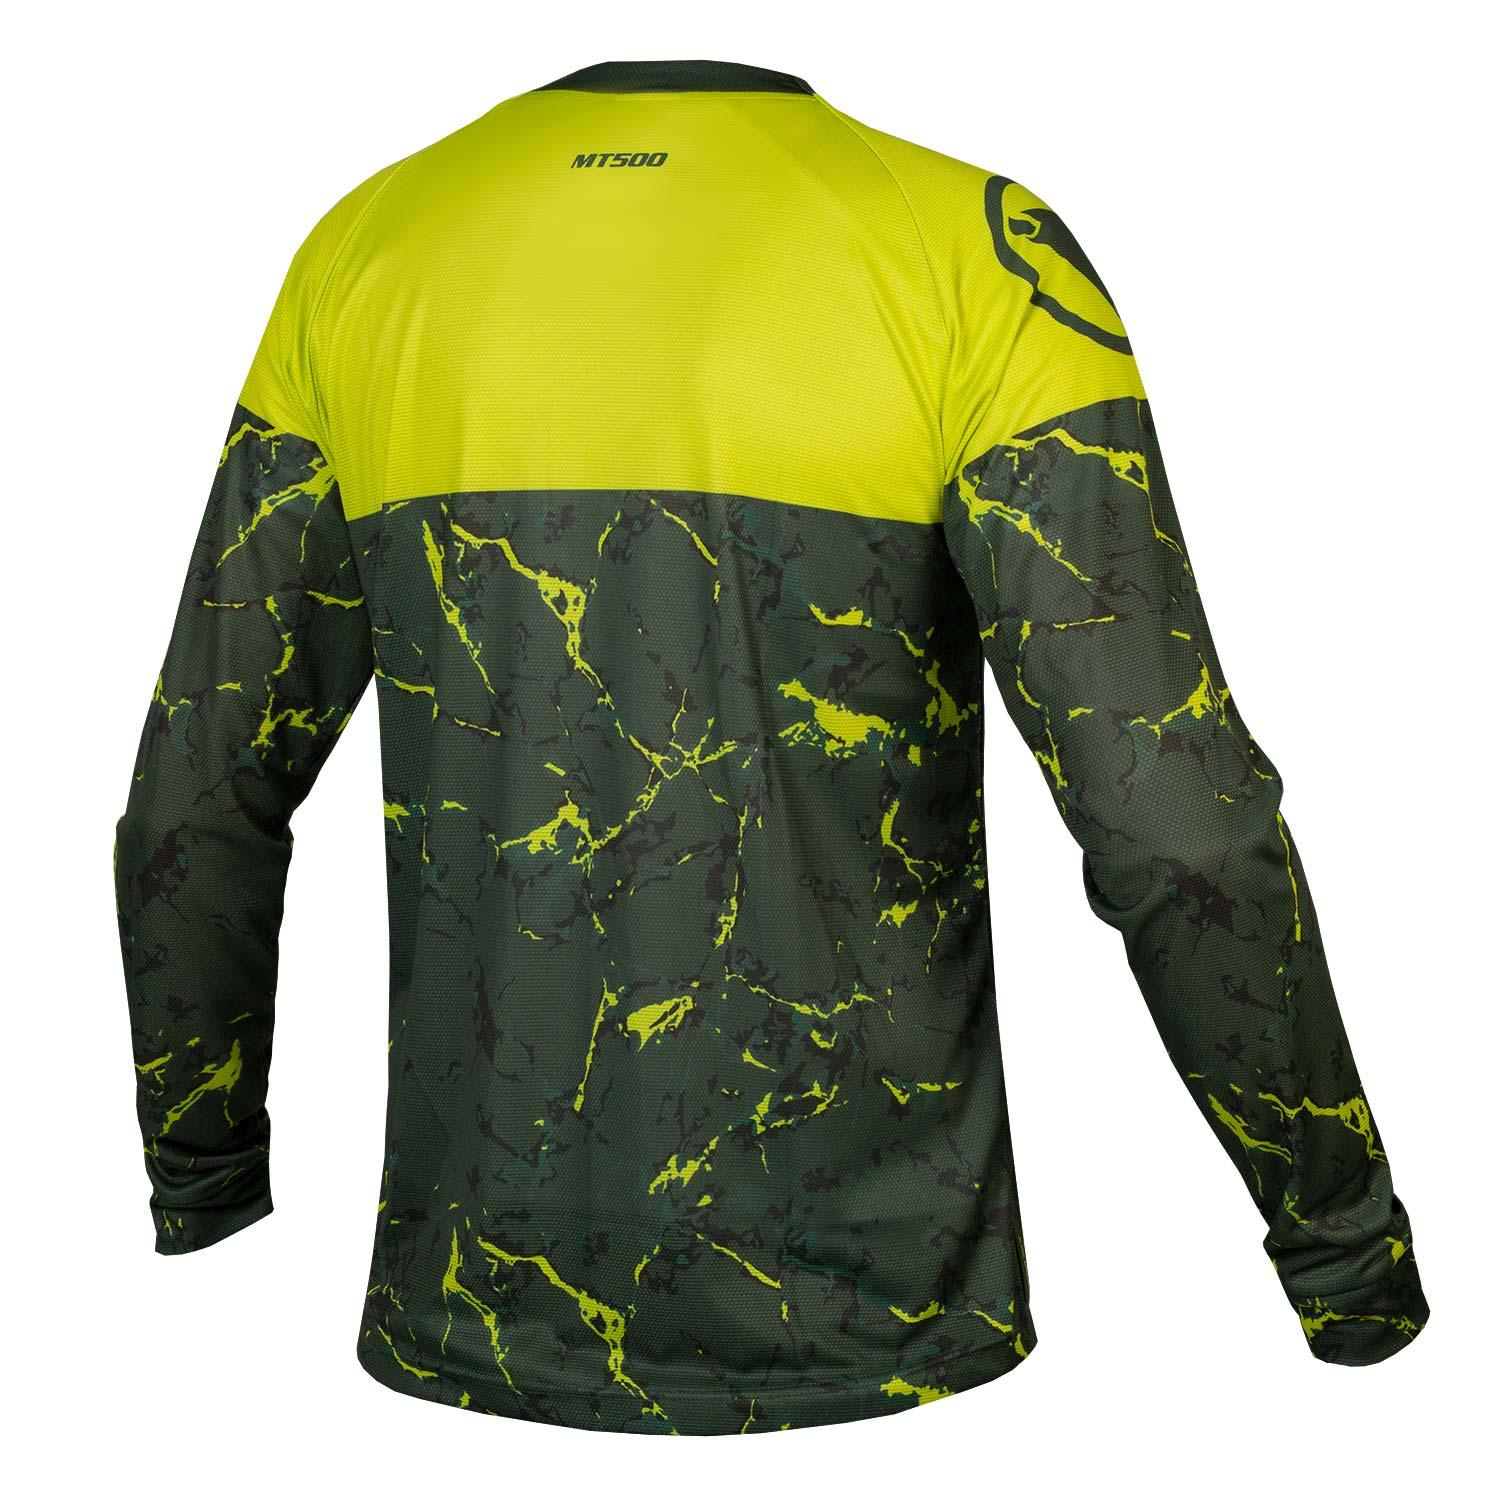 Endura Wielershirt MTB lange mouwen voor heren Limoen / MT500 Marble L/S T LTD Lime Green